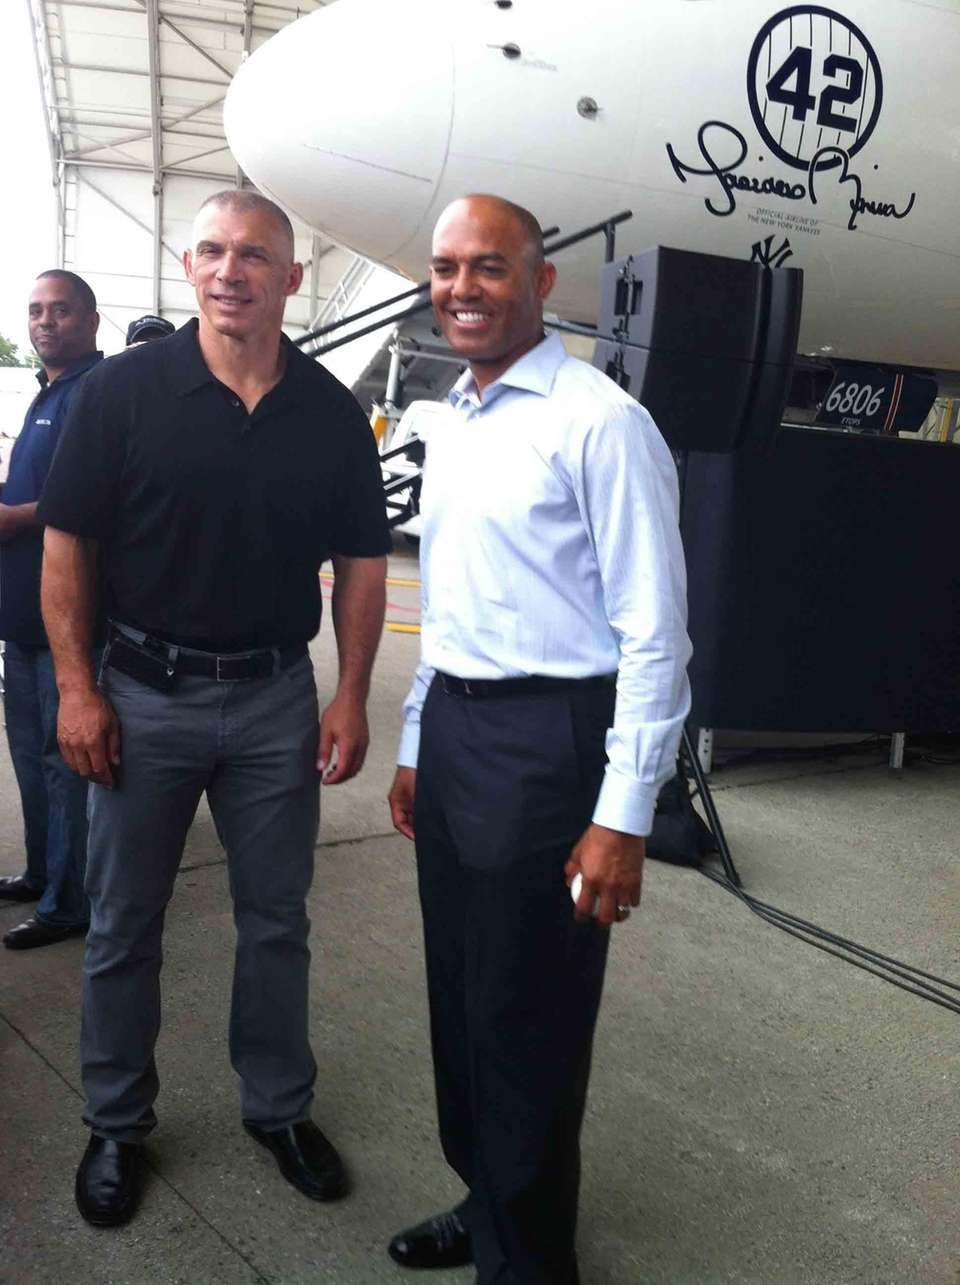 Yankees closer Mariano Rivera poses with manager Joe